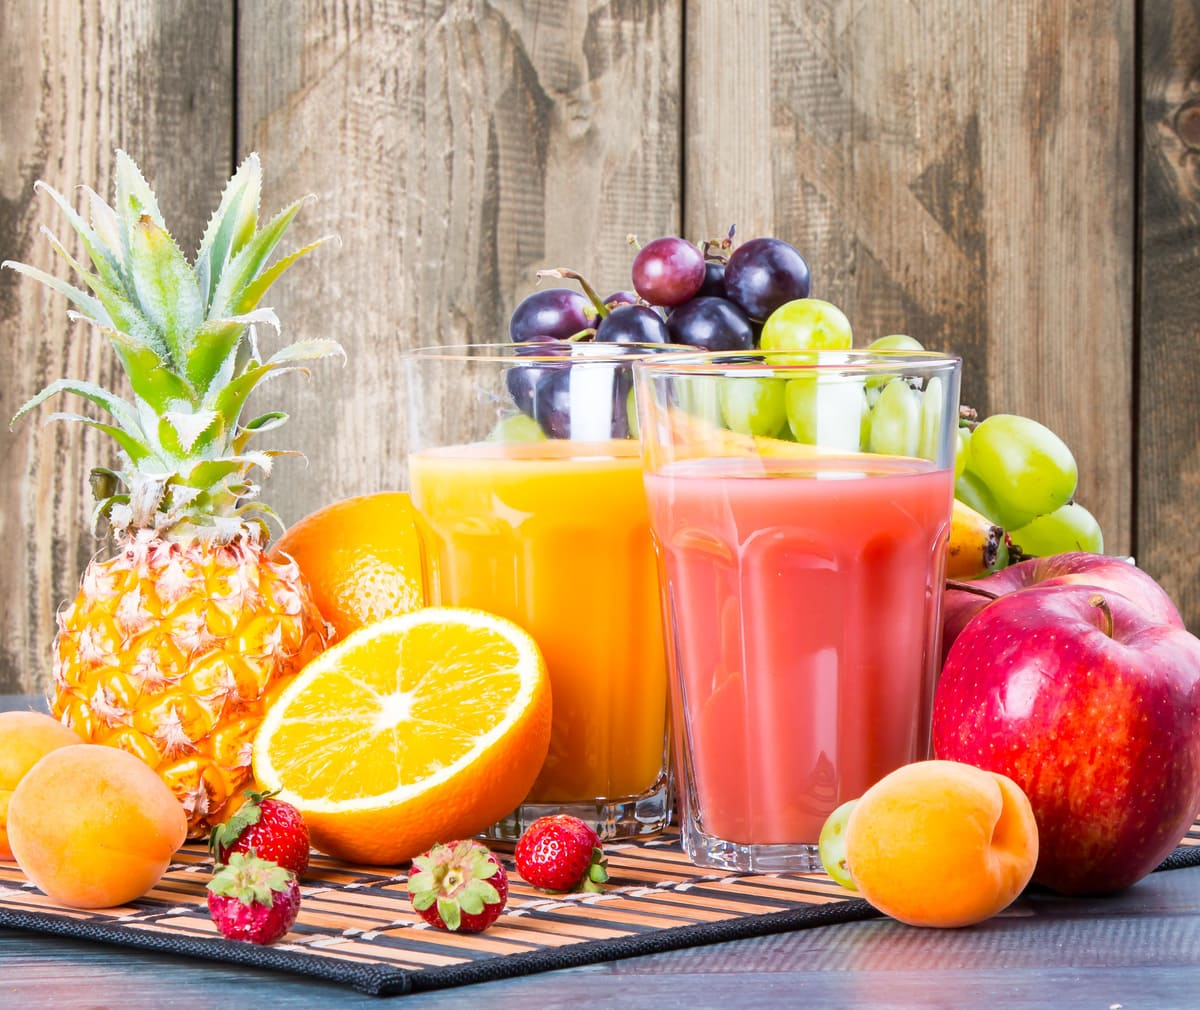 Mixed Juices